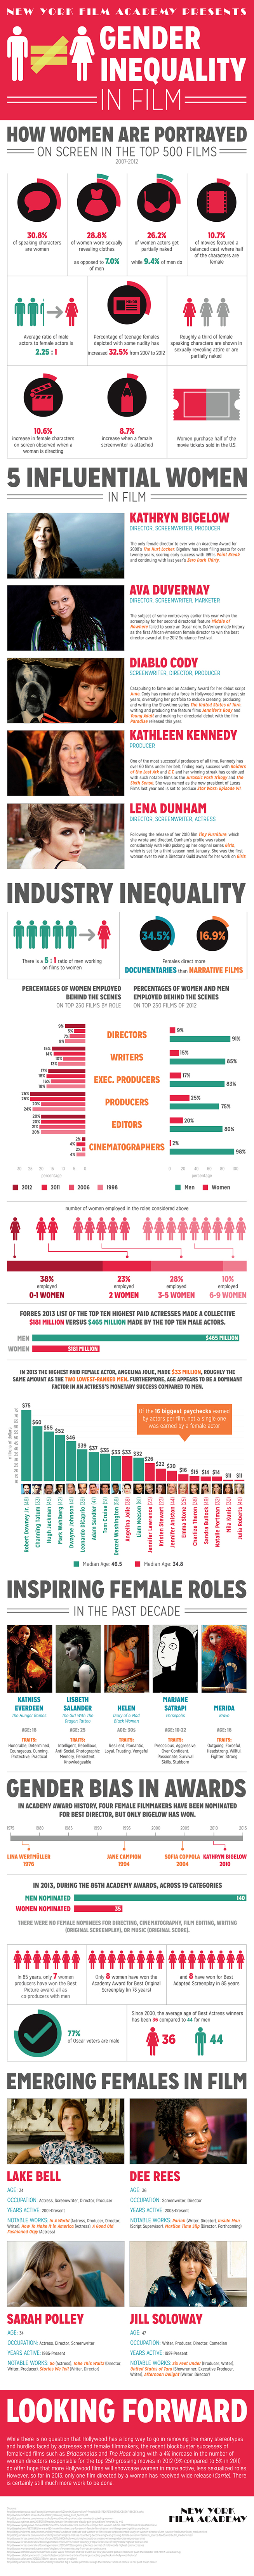 New York Film Academy's Gender Inequality in Film Infographic